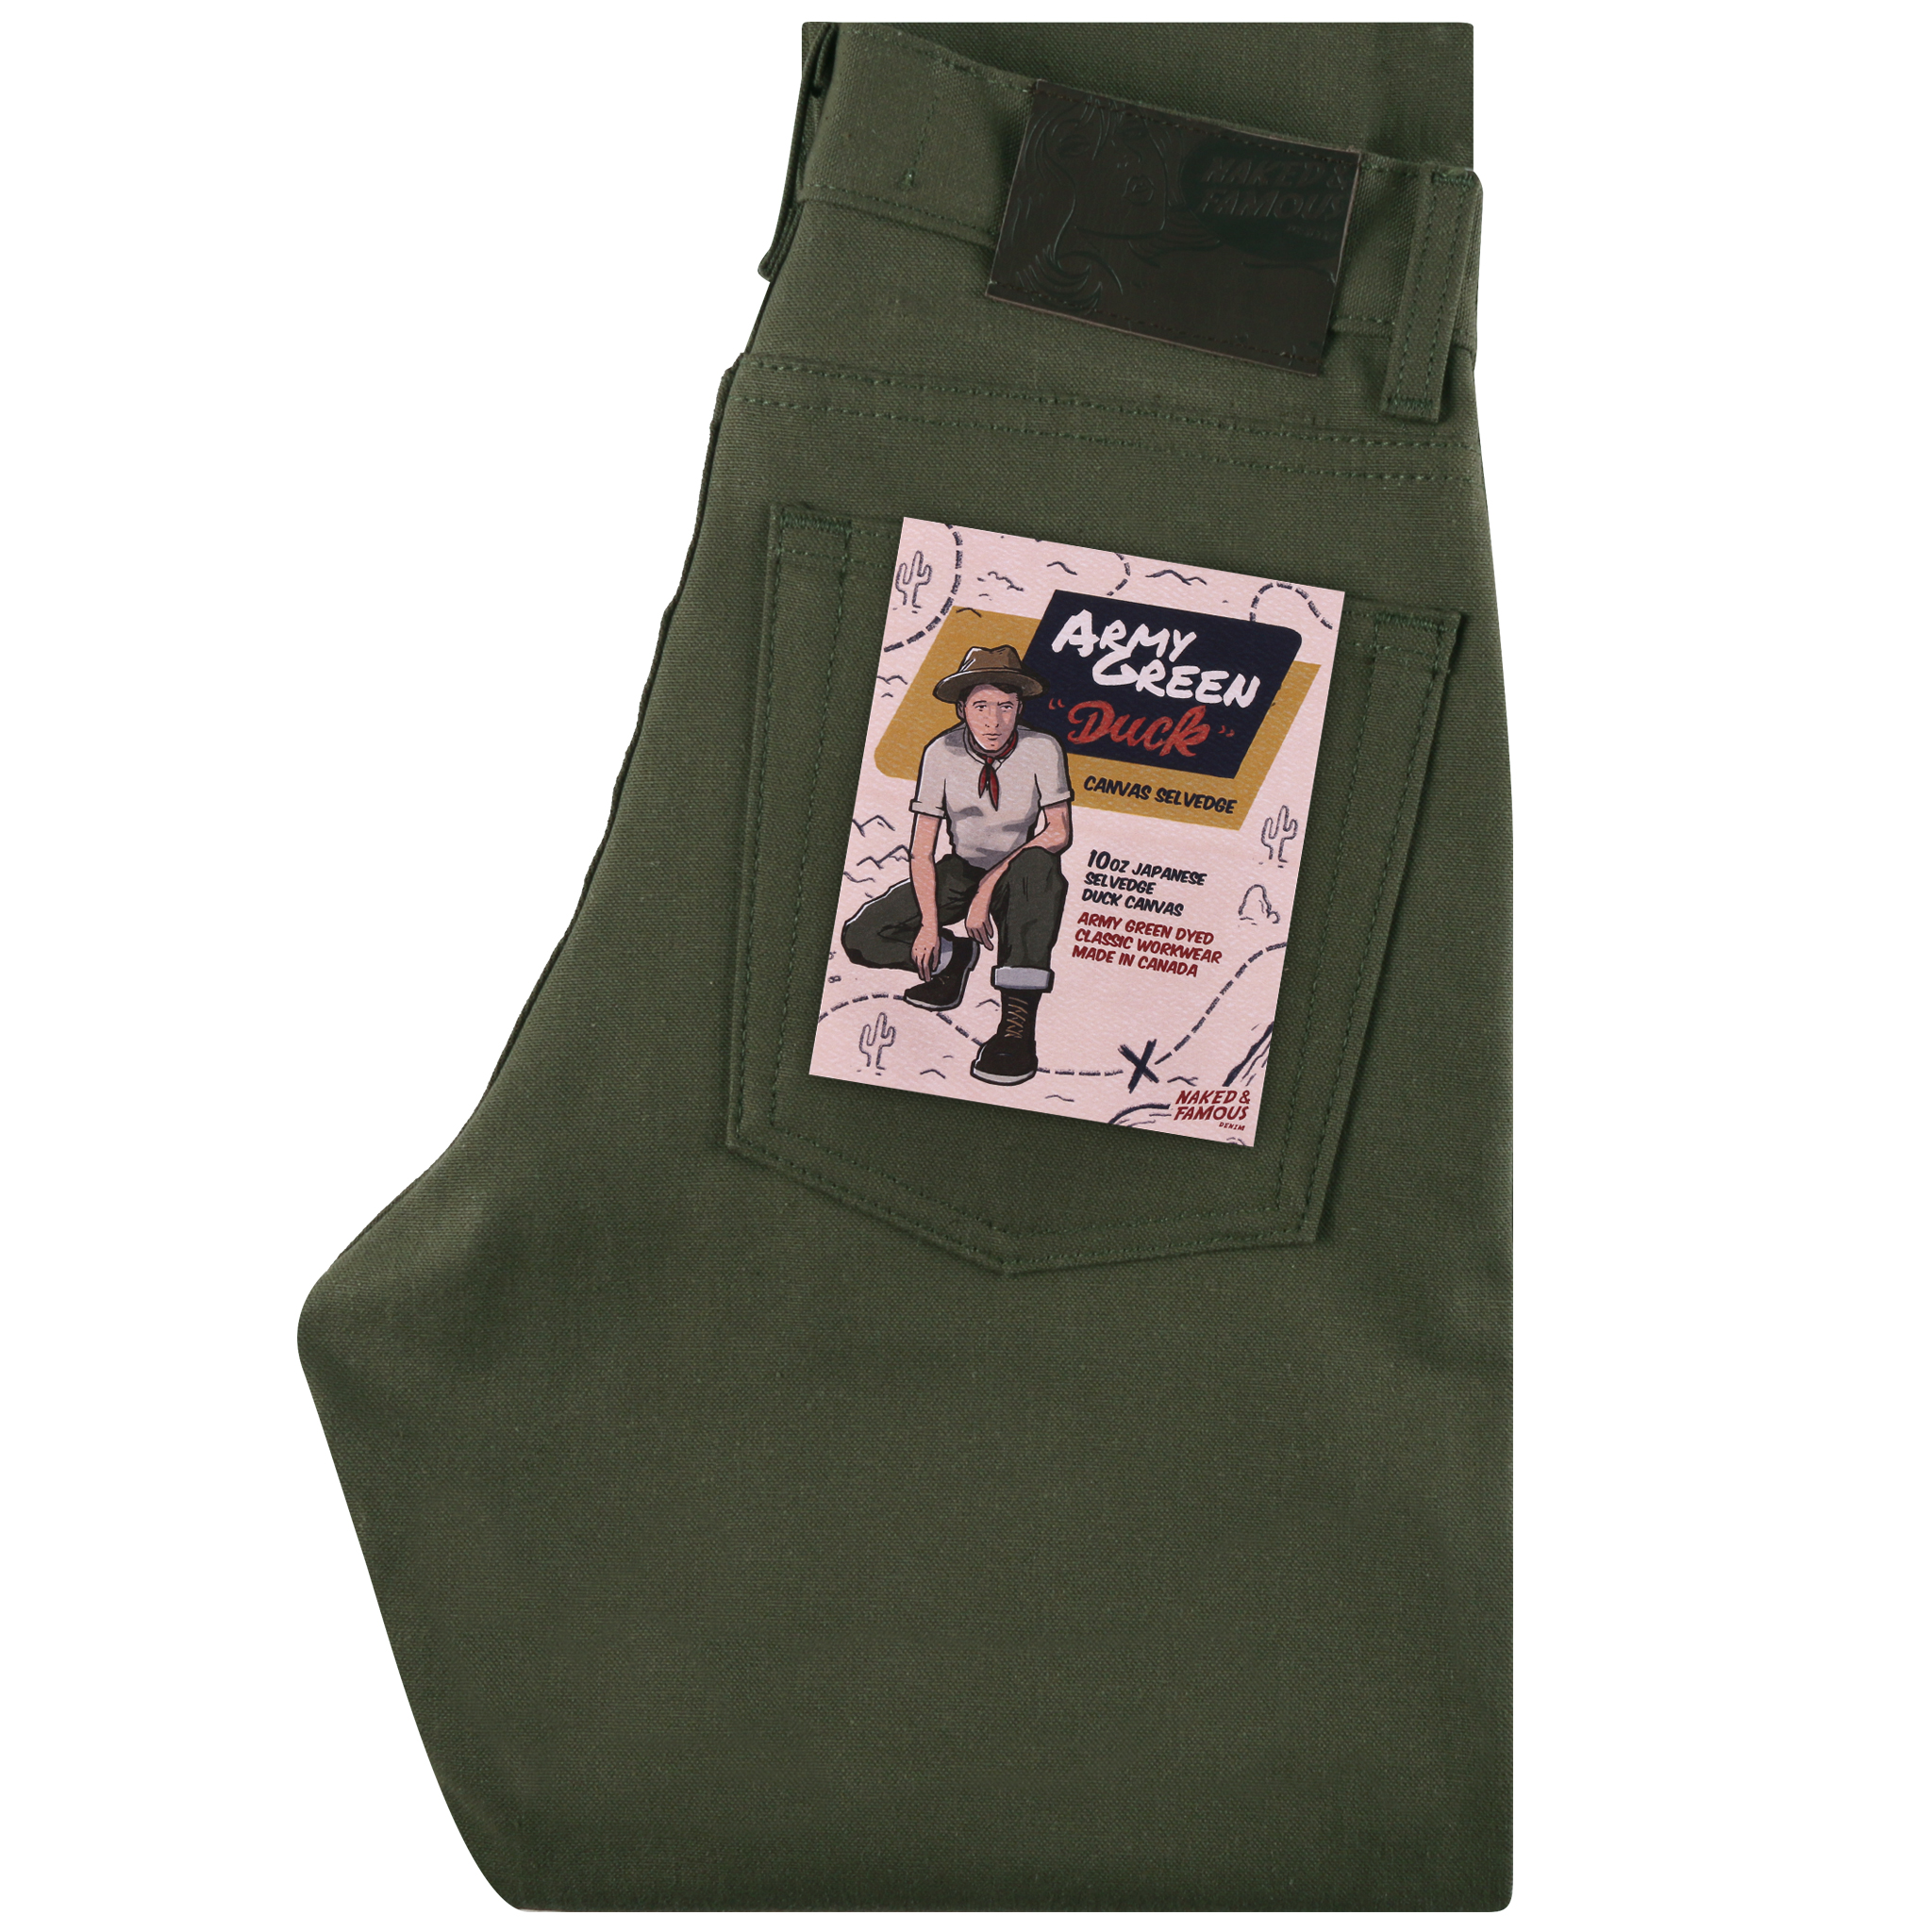 Army Green Duck Canvas SELVEDGE - Max / Classic